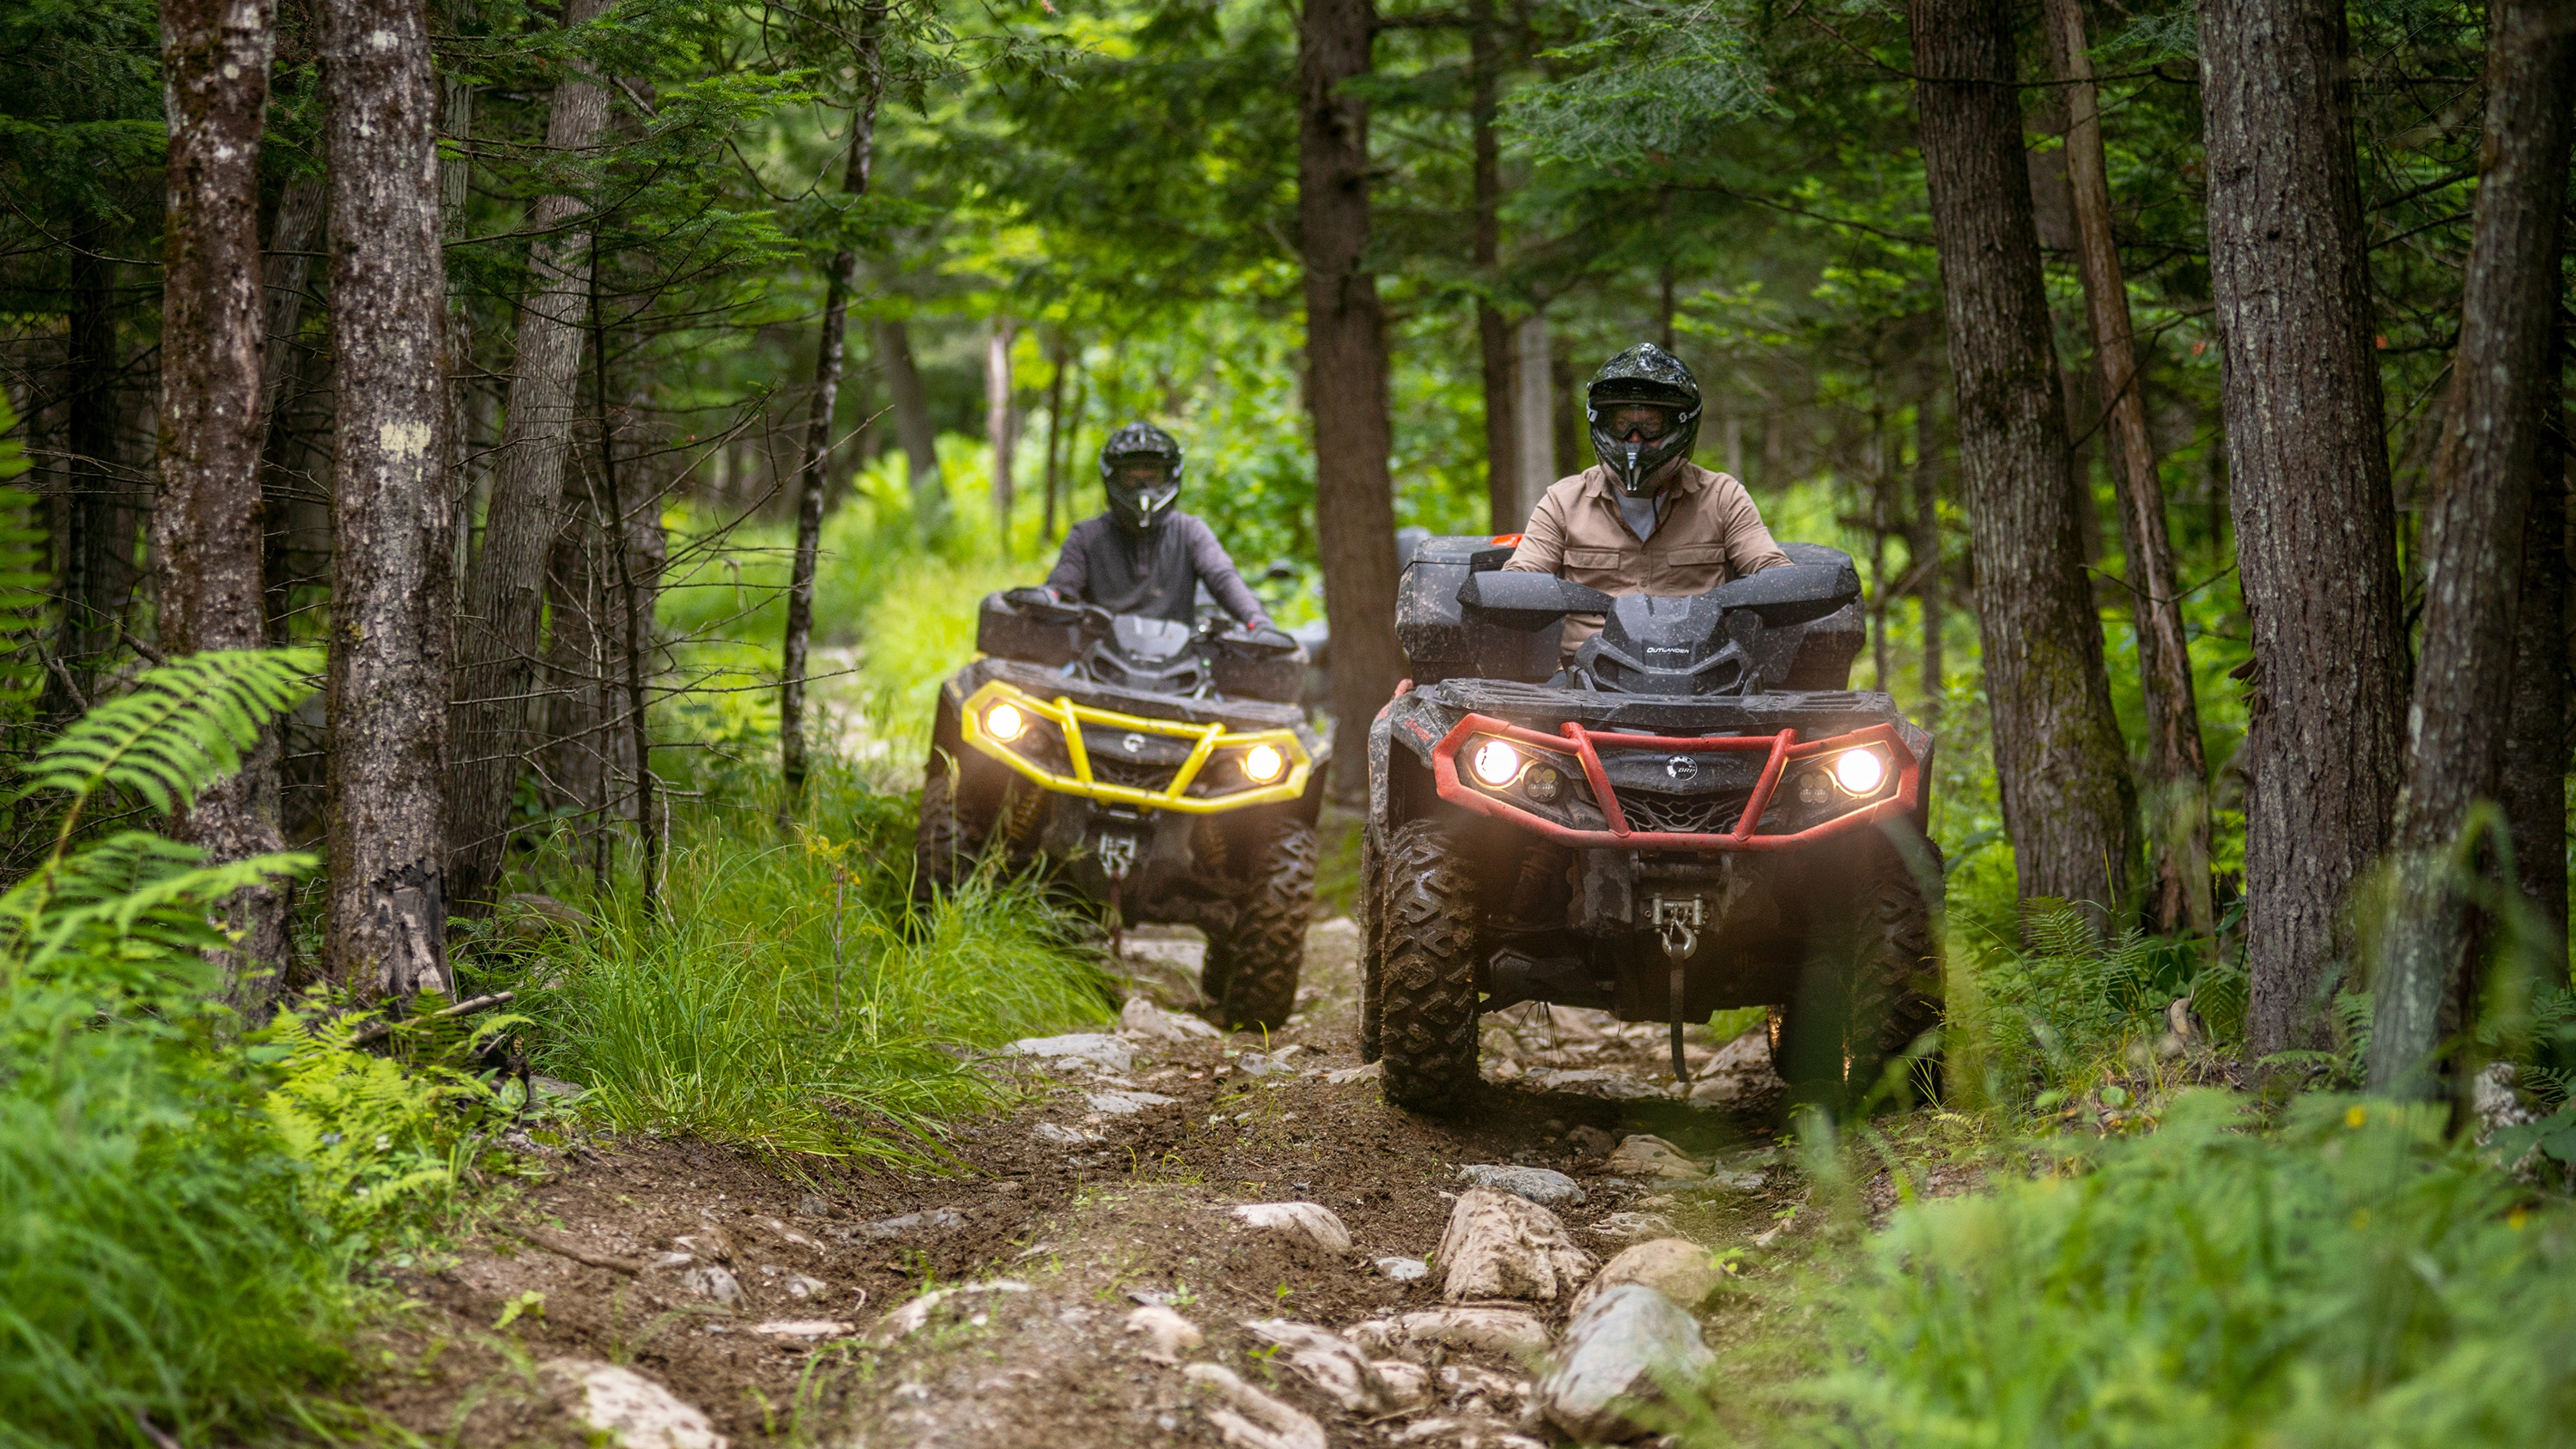 Two men driving their Outlander ATV through a forest trail